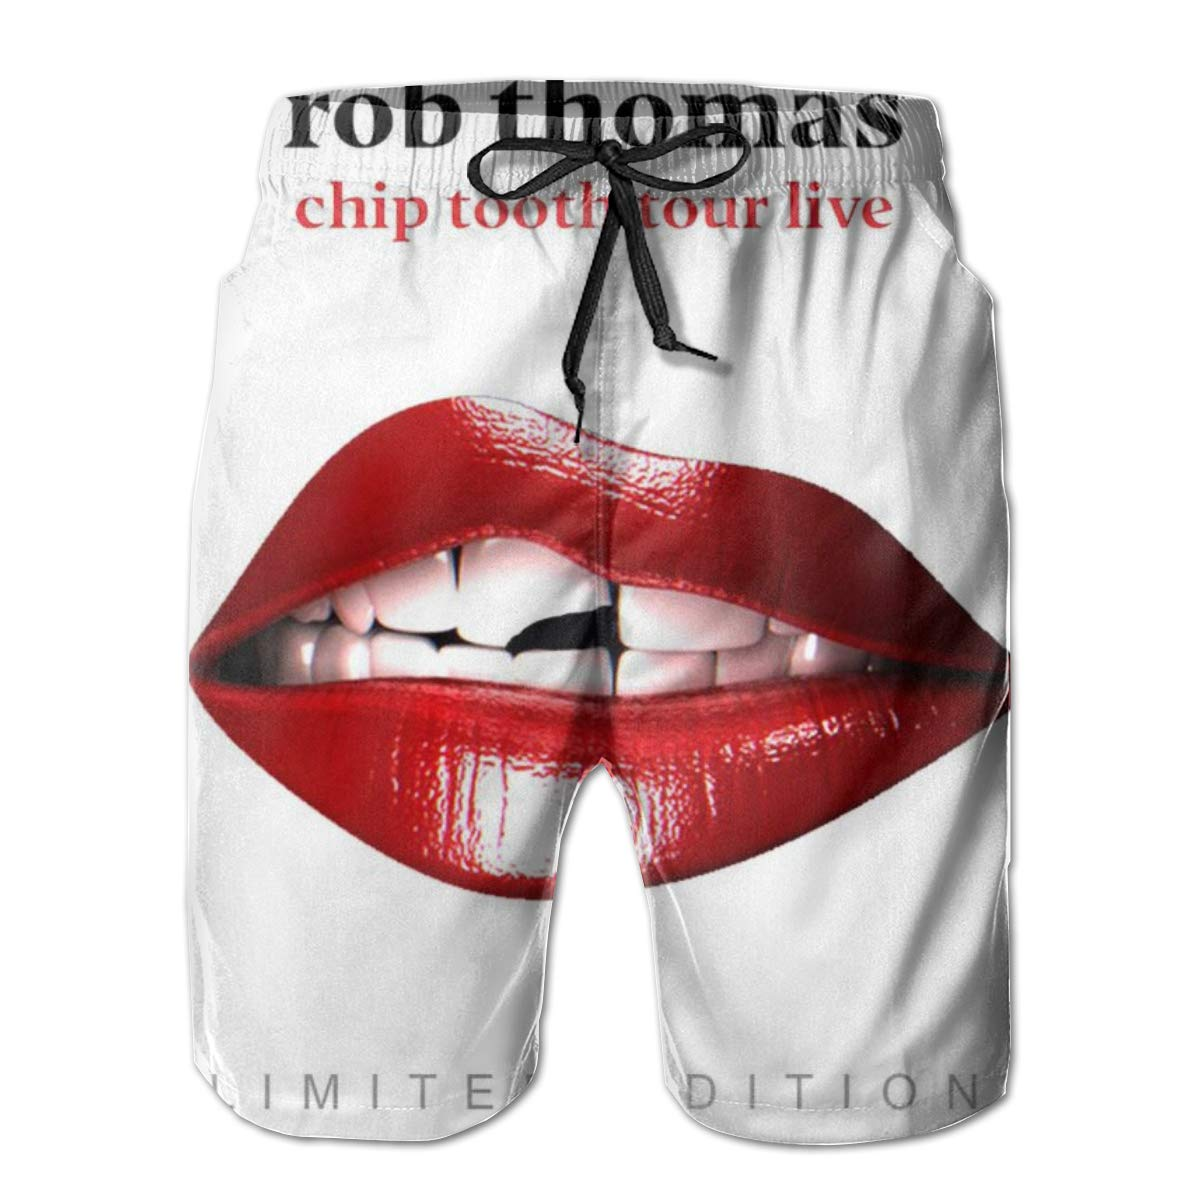 Nathalie R Salmeron Rob Thomas Chip Tooth Tour Mens Quick Dry Board Shorts Bathing Suit